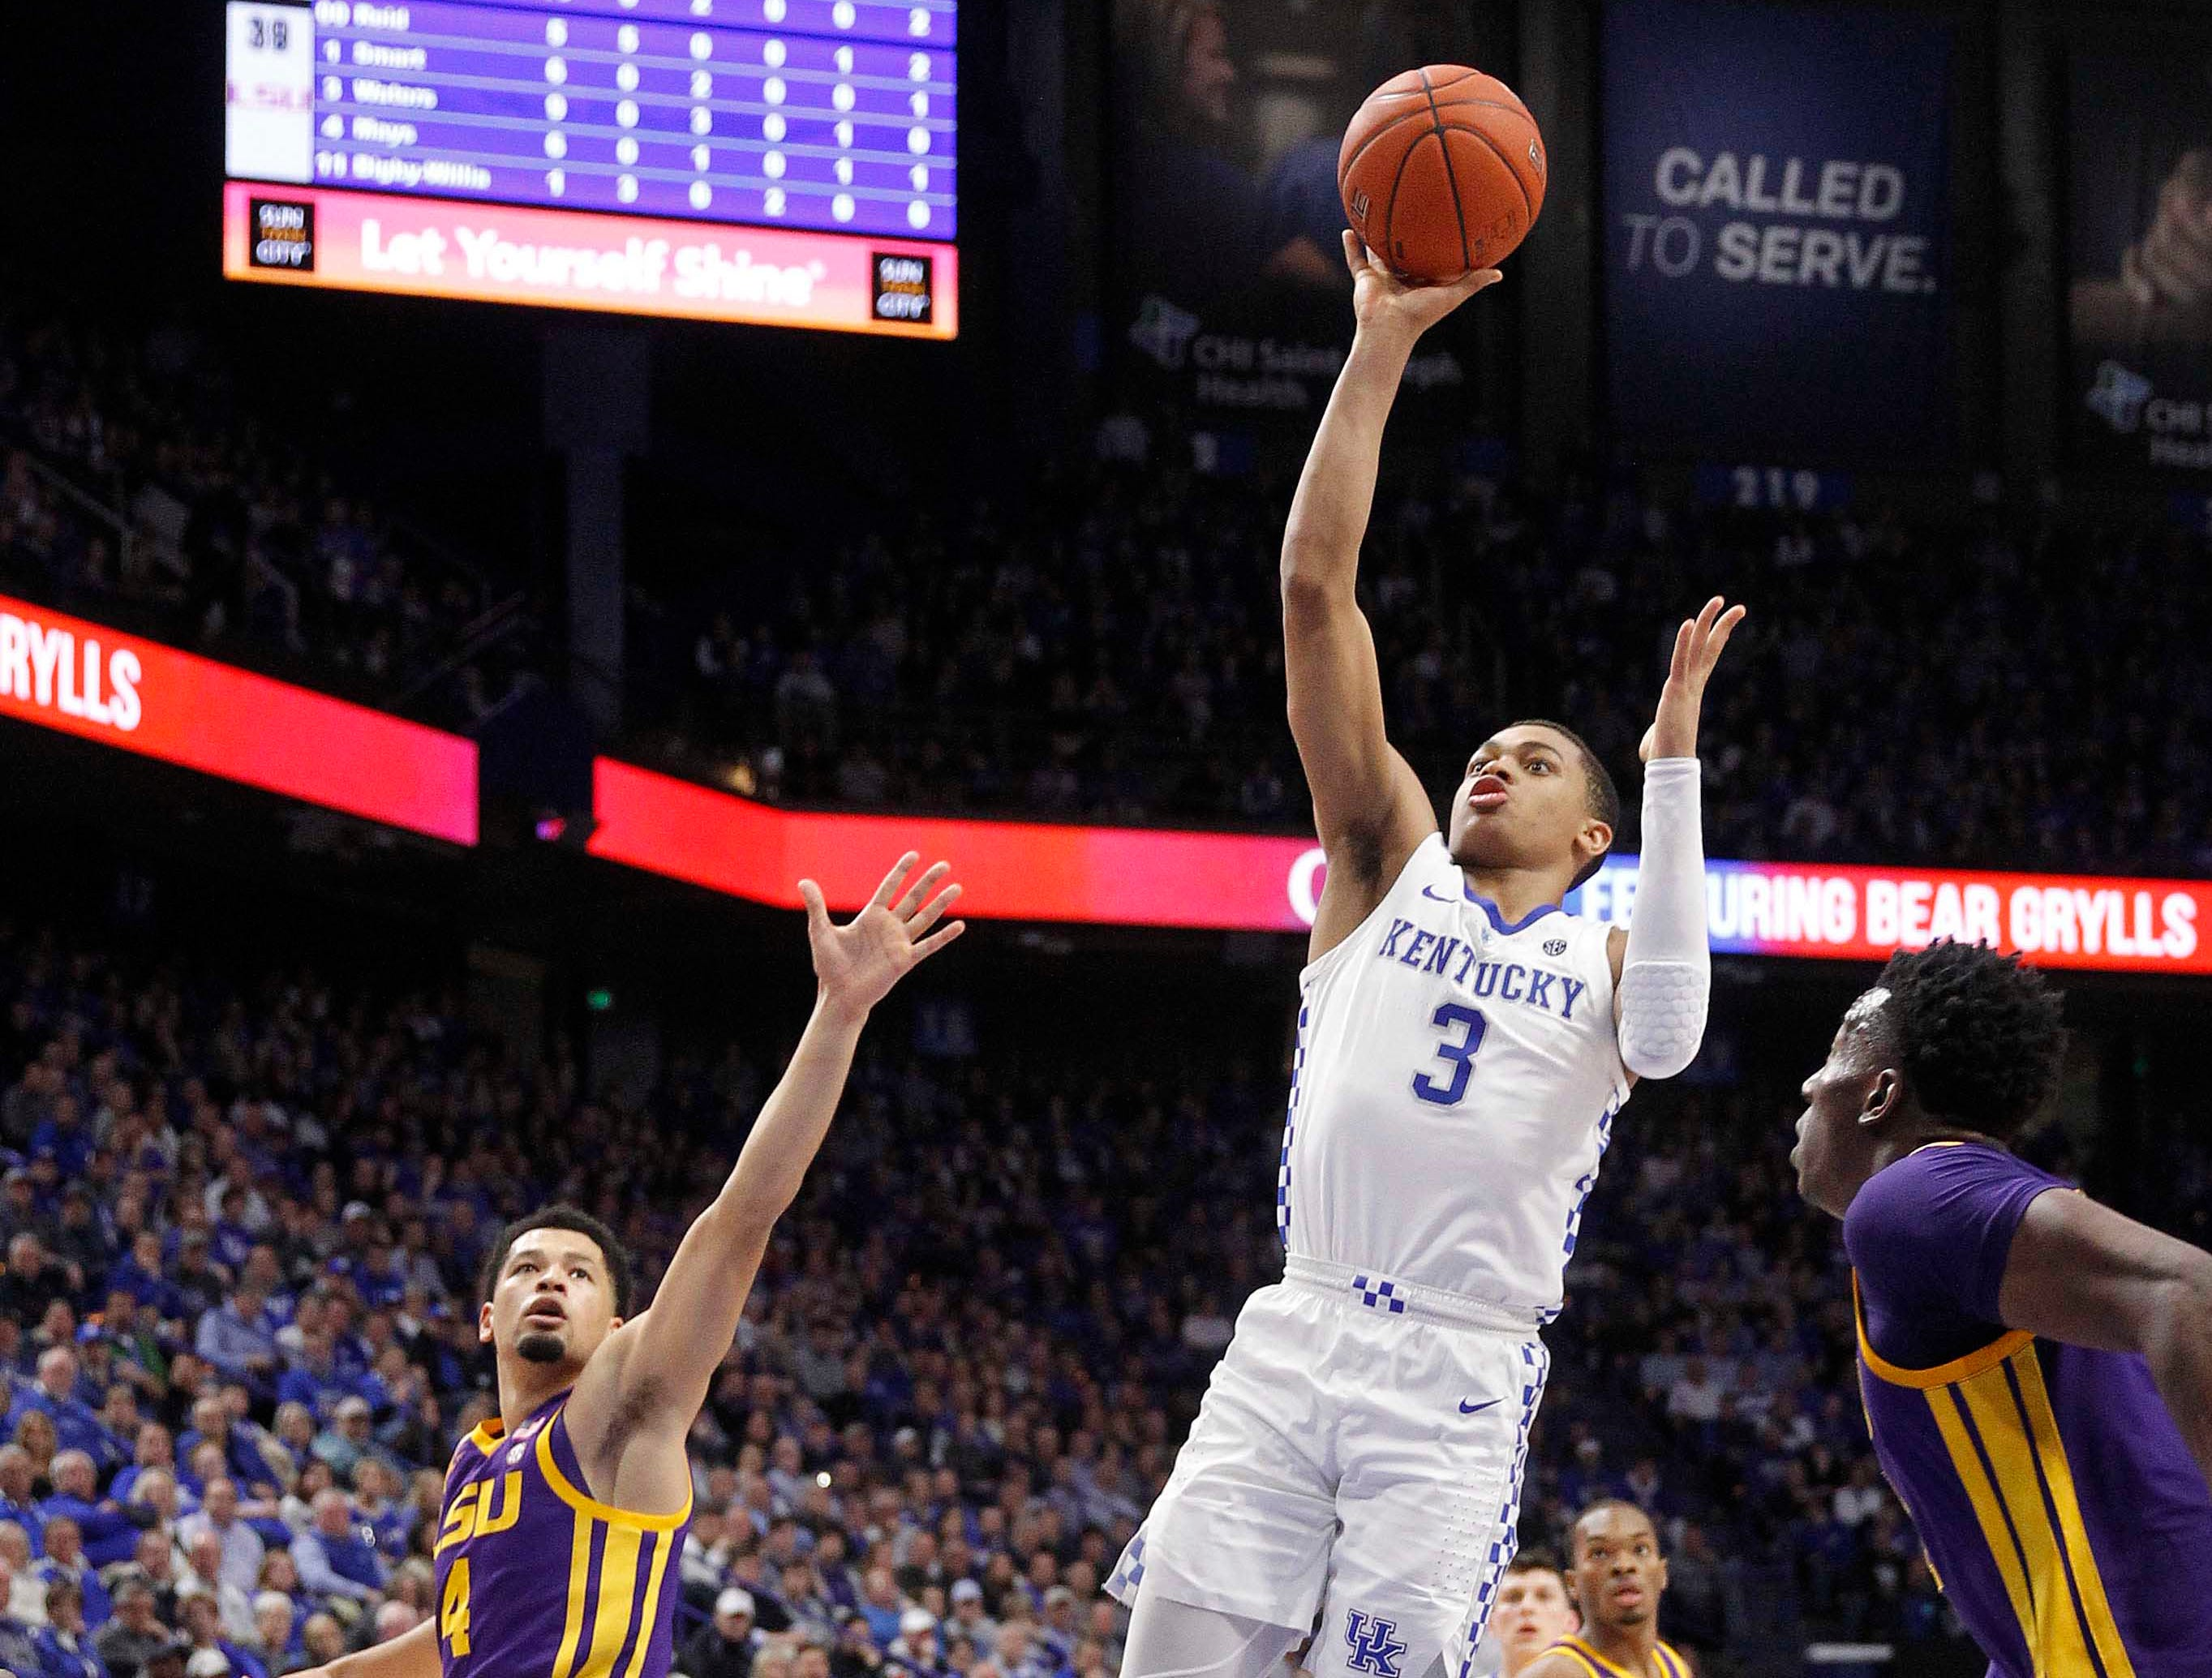 Feb 12, 2019; Lexington, KY, USA; Kentucky Wildcats guard Keldon Johnson (3) shoots the ball against LSU Tigers guard Tremont Waters (3) in the second half at Rupp Arena. Mandatory Credit: Mark Zerof-USA TODAY Sports